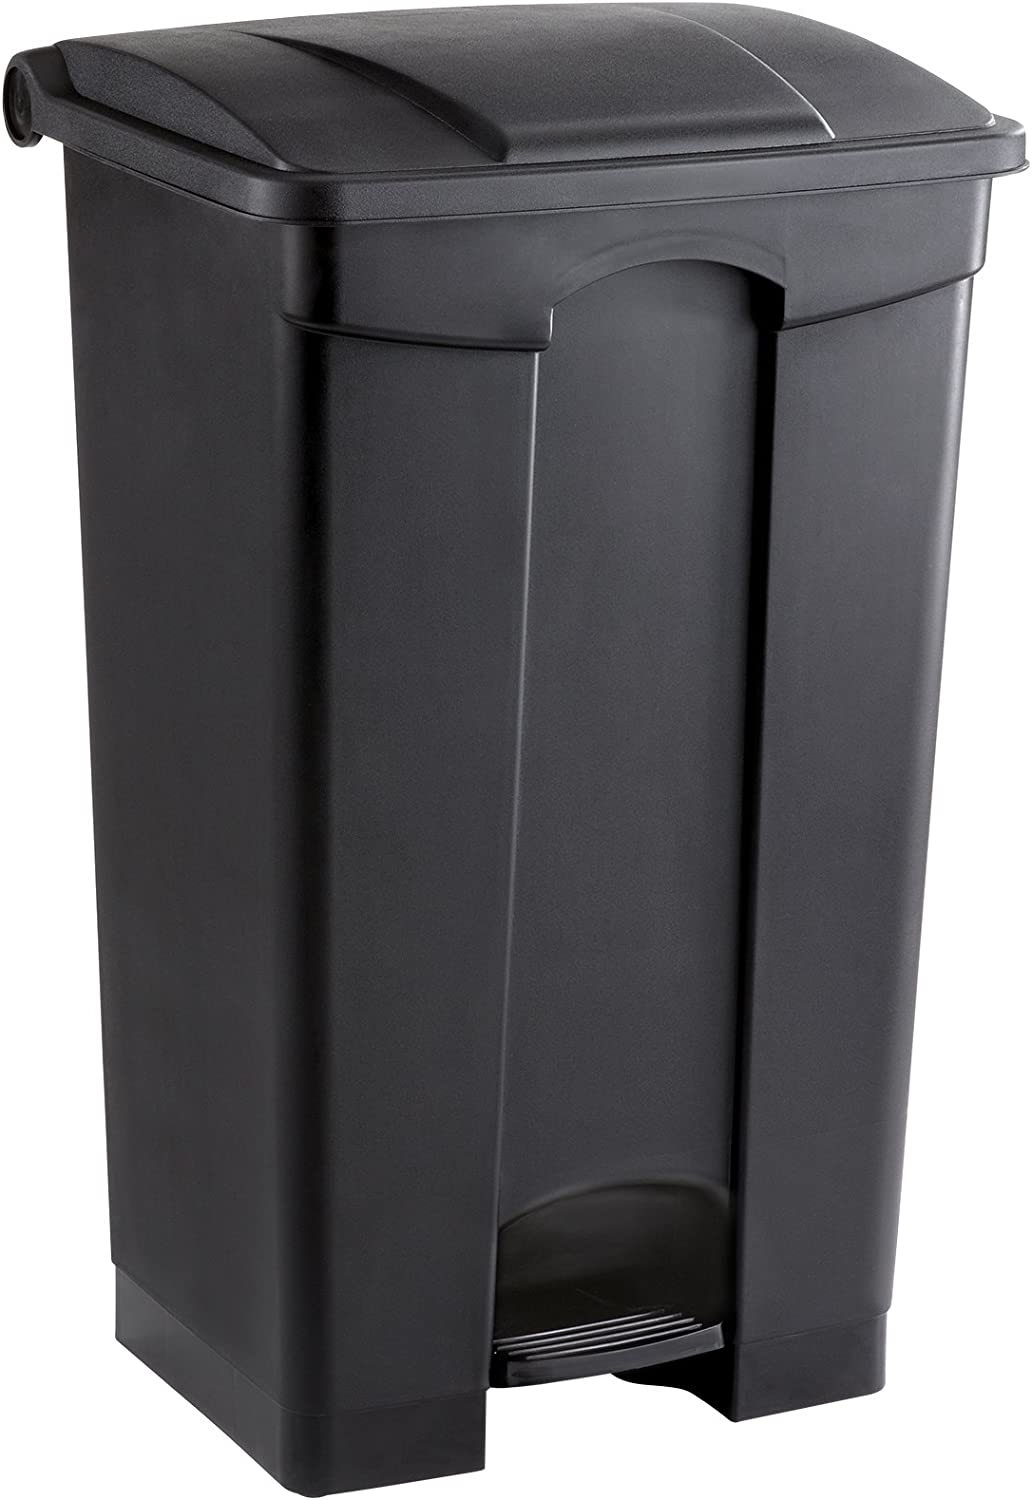 Safco Products Plastic Step-On Trash Can 9923BL, Black, Hands-free Disposal, 23-Gallon Capacity 716qfrp8UKL